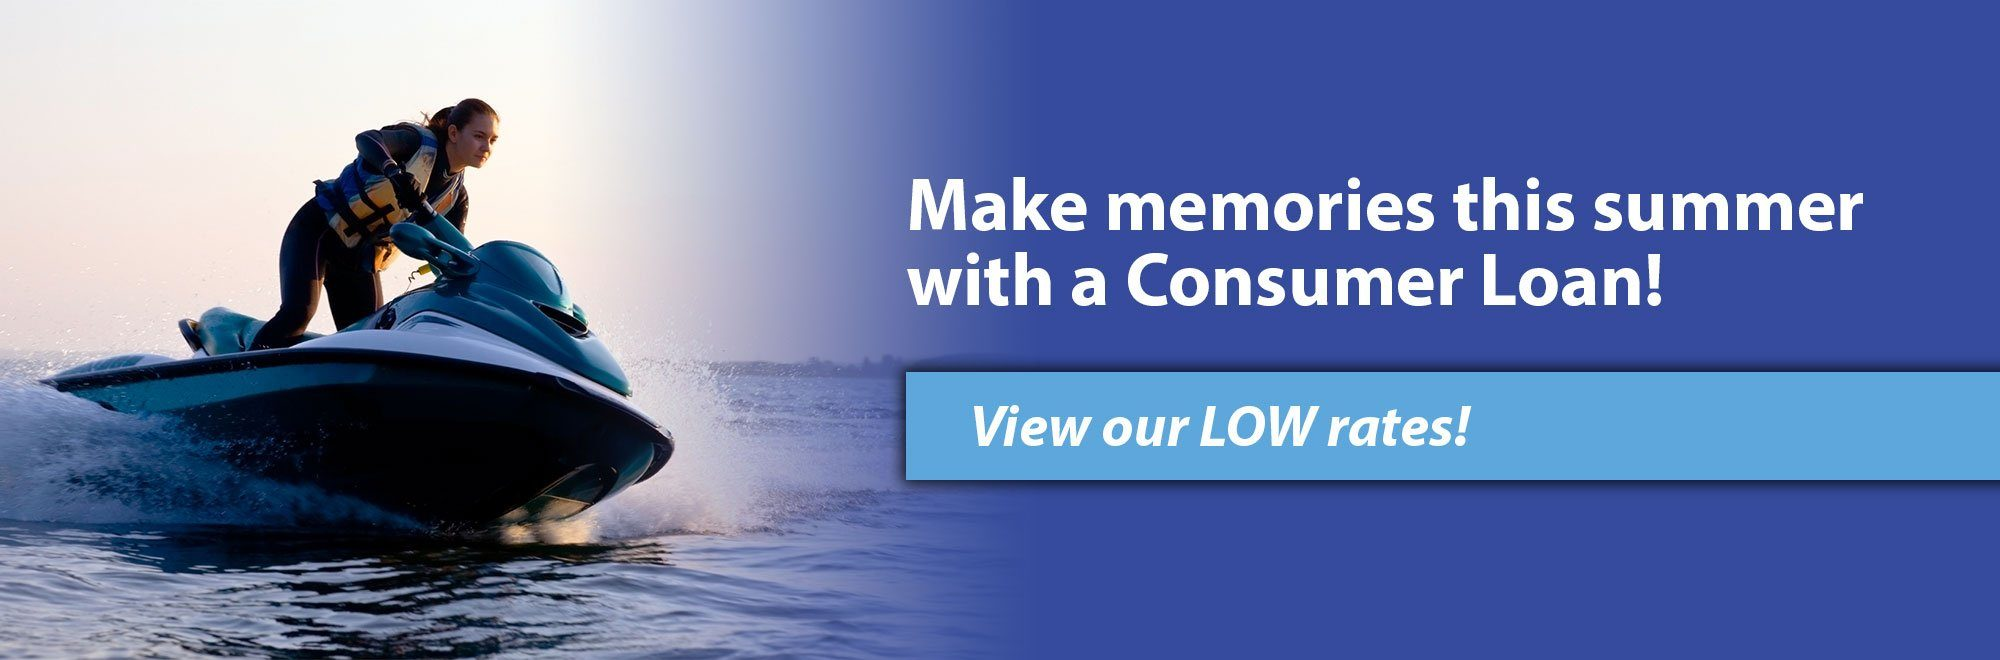 Make memories this summer with a Consumer Loan! View our LOW rates!